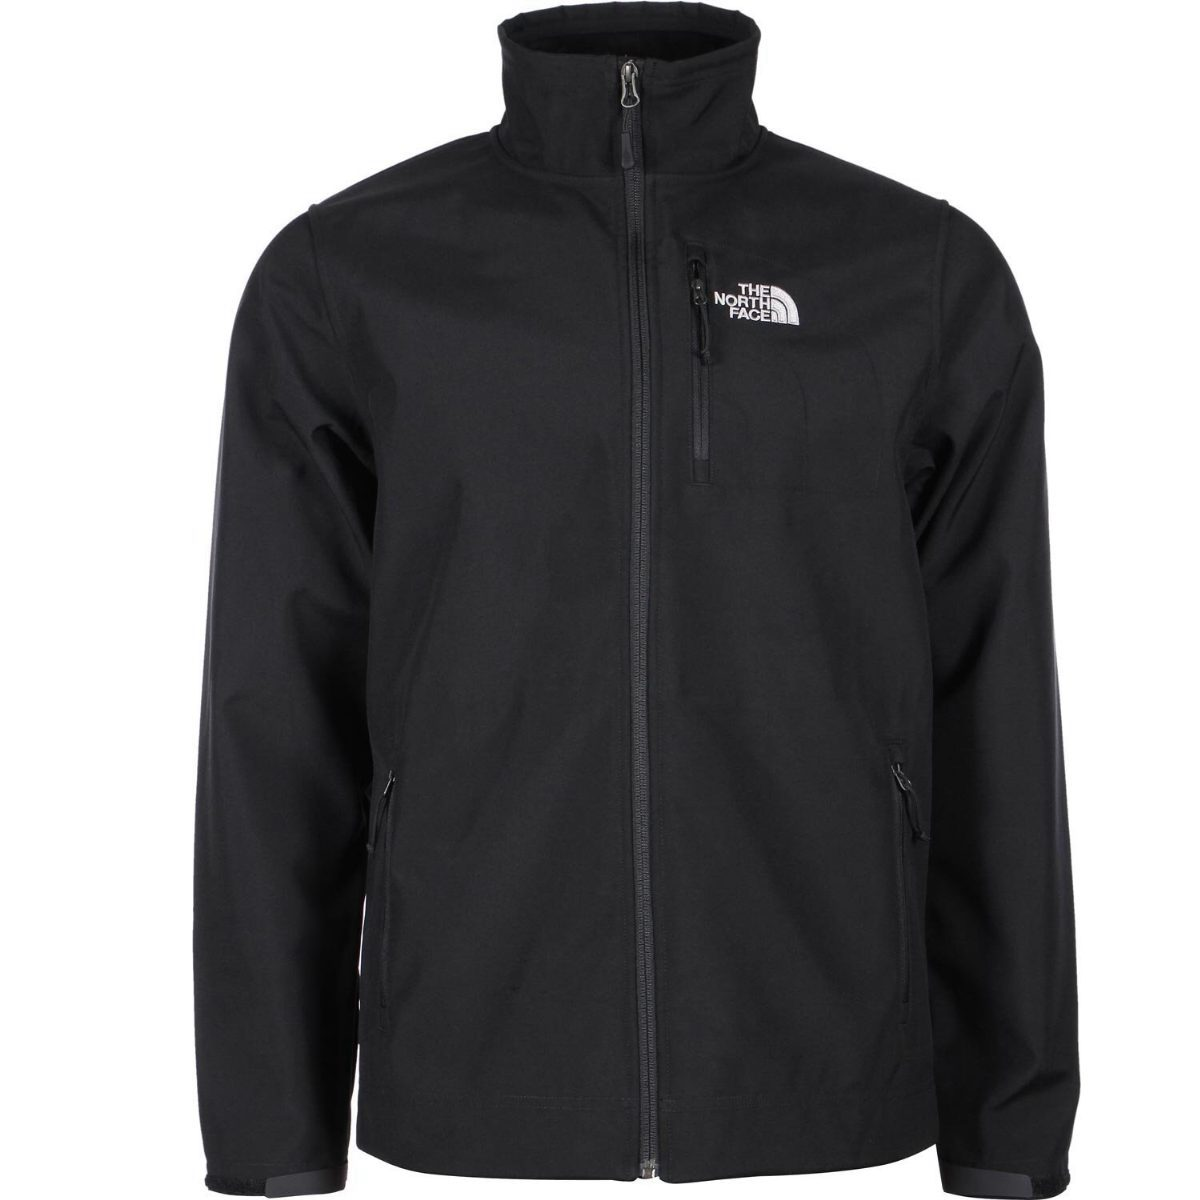 the north face durango jacket jacke softshelljacke herren. Black Bedroom Furniture Sets. Home Design Ideas